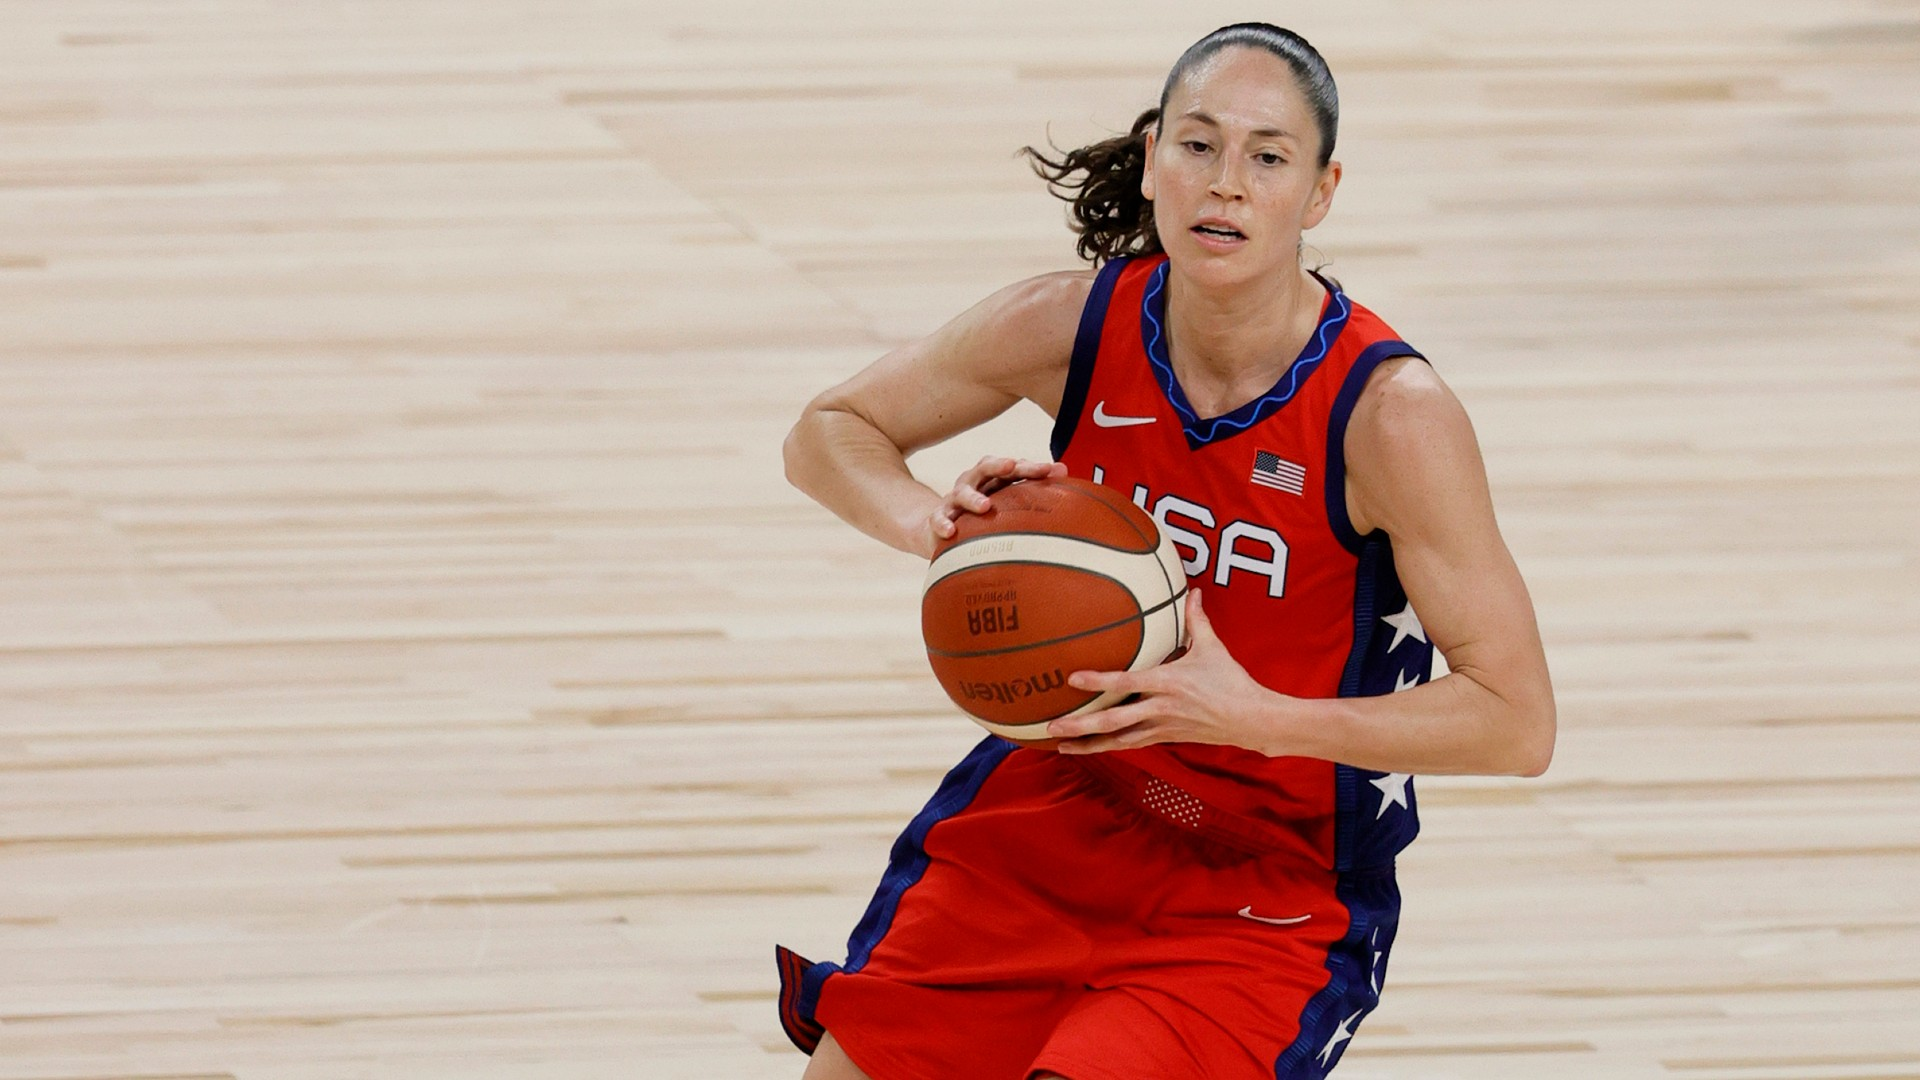 USA vs. Australia time, channel, TV schedule to watch 2021 Olympic women's basketball game